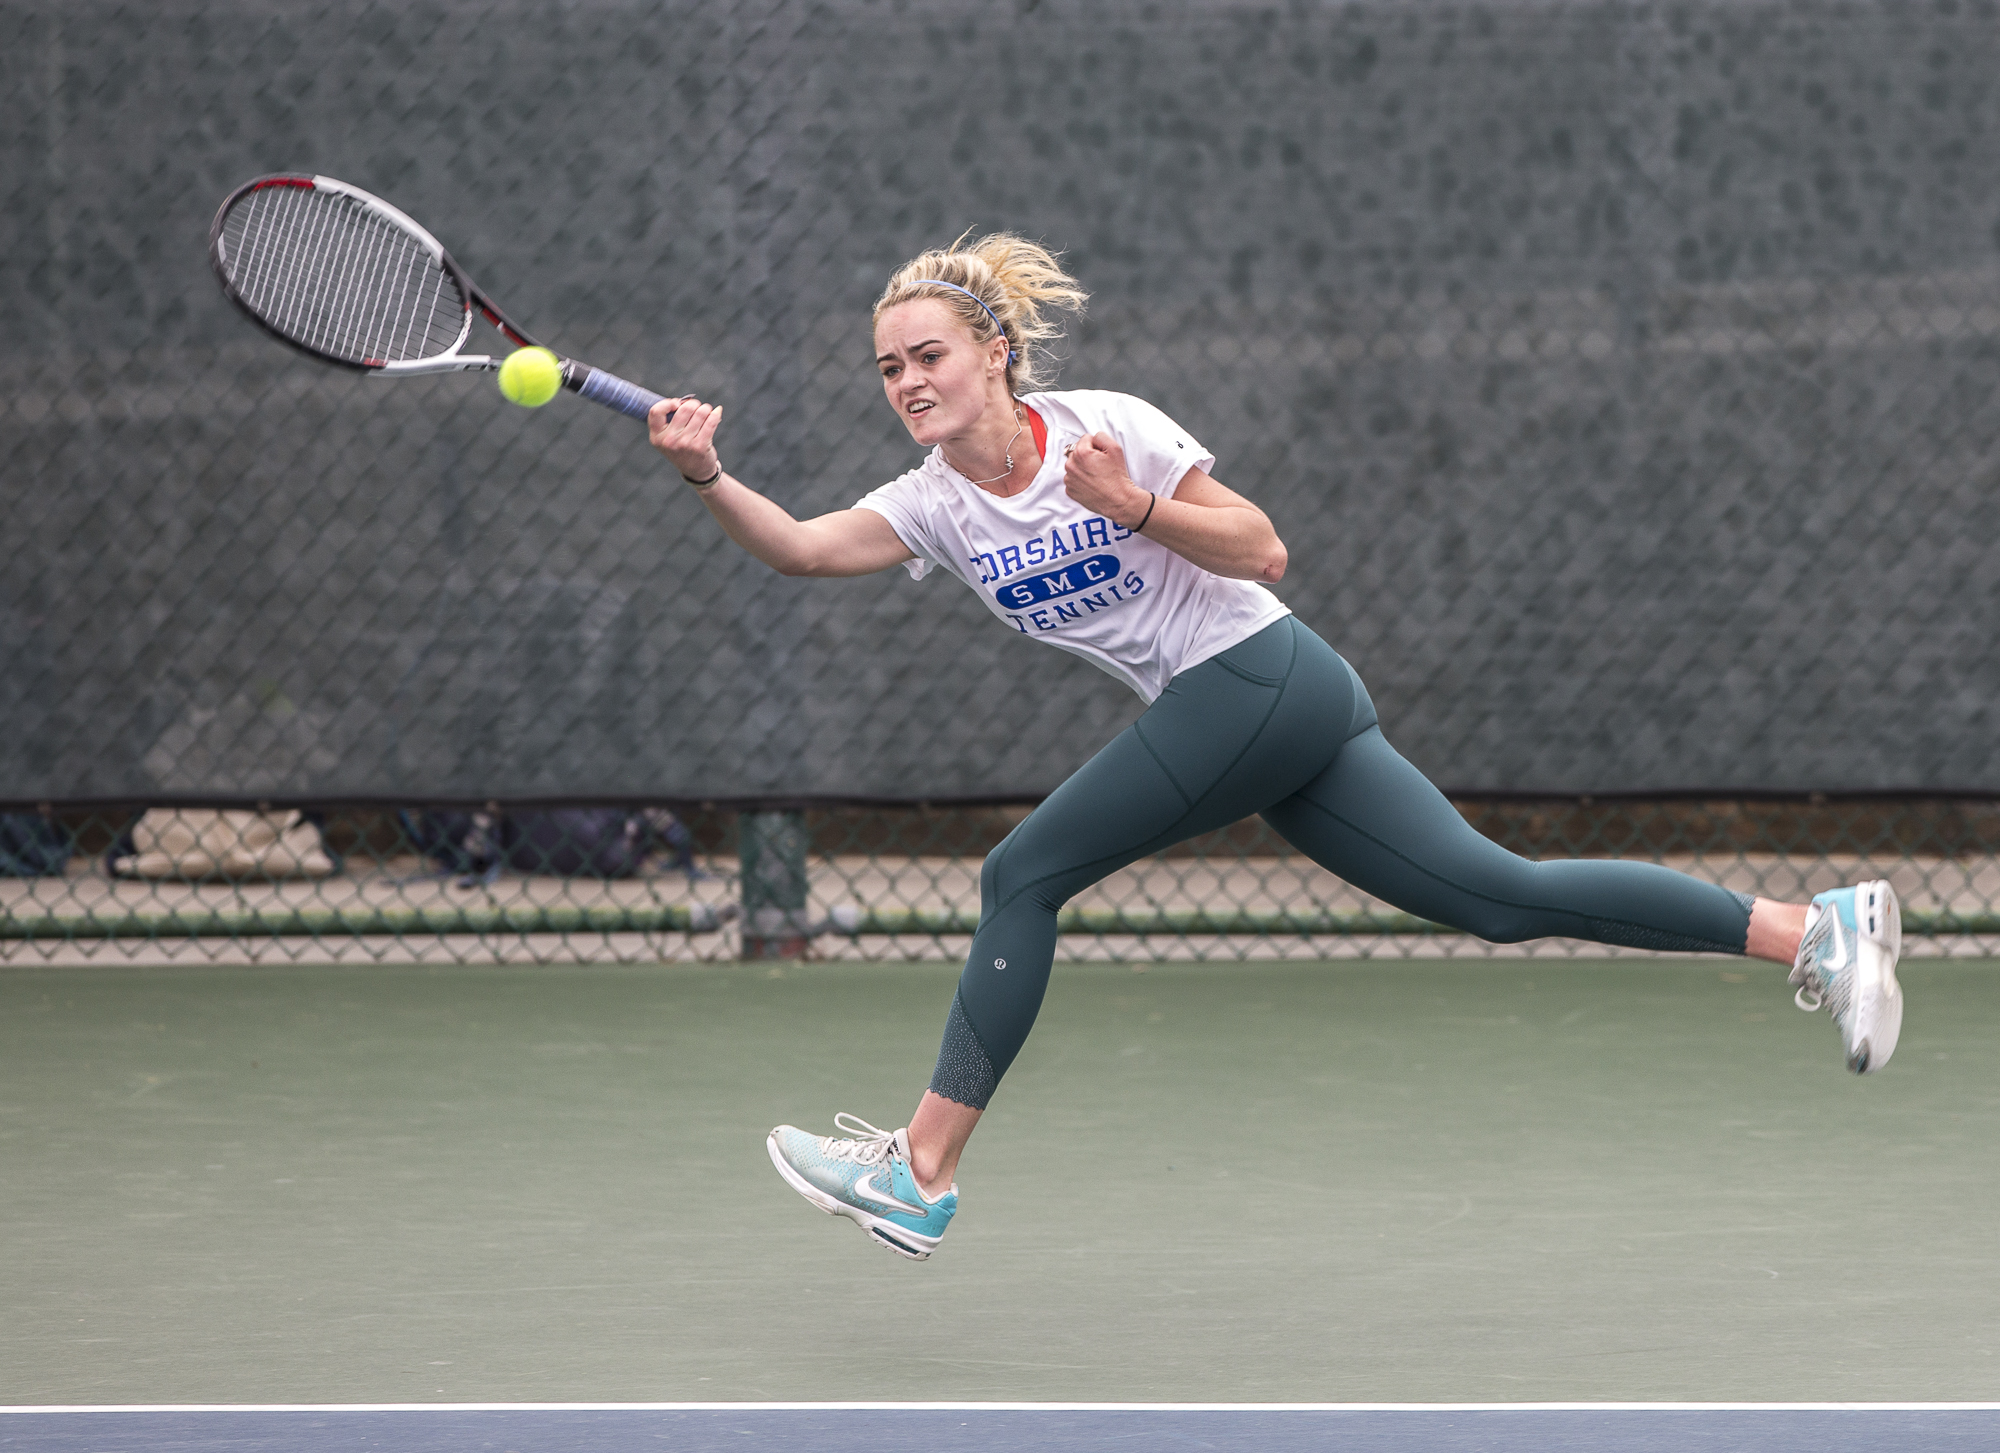 Santa Monica College Corsair sophomore Abby Mullins (#1, doubles) with great reach nails a powerful forehand strike during her doubles match against her Glendale City College Vaquero opponents consisting of sophomore Srna Lepchevska (cq) and sophomore Hailey McNall (cq) at the Ocean View Park Tennis Courts in Santa Monica, California on Tuesday, March 20 2018. The single set that Mullins and per partner played had a final score of a 2 – 8 loss, which contributed to the 0-6 match loss for the team (Matthew Martin/Corsair Photo).